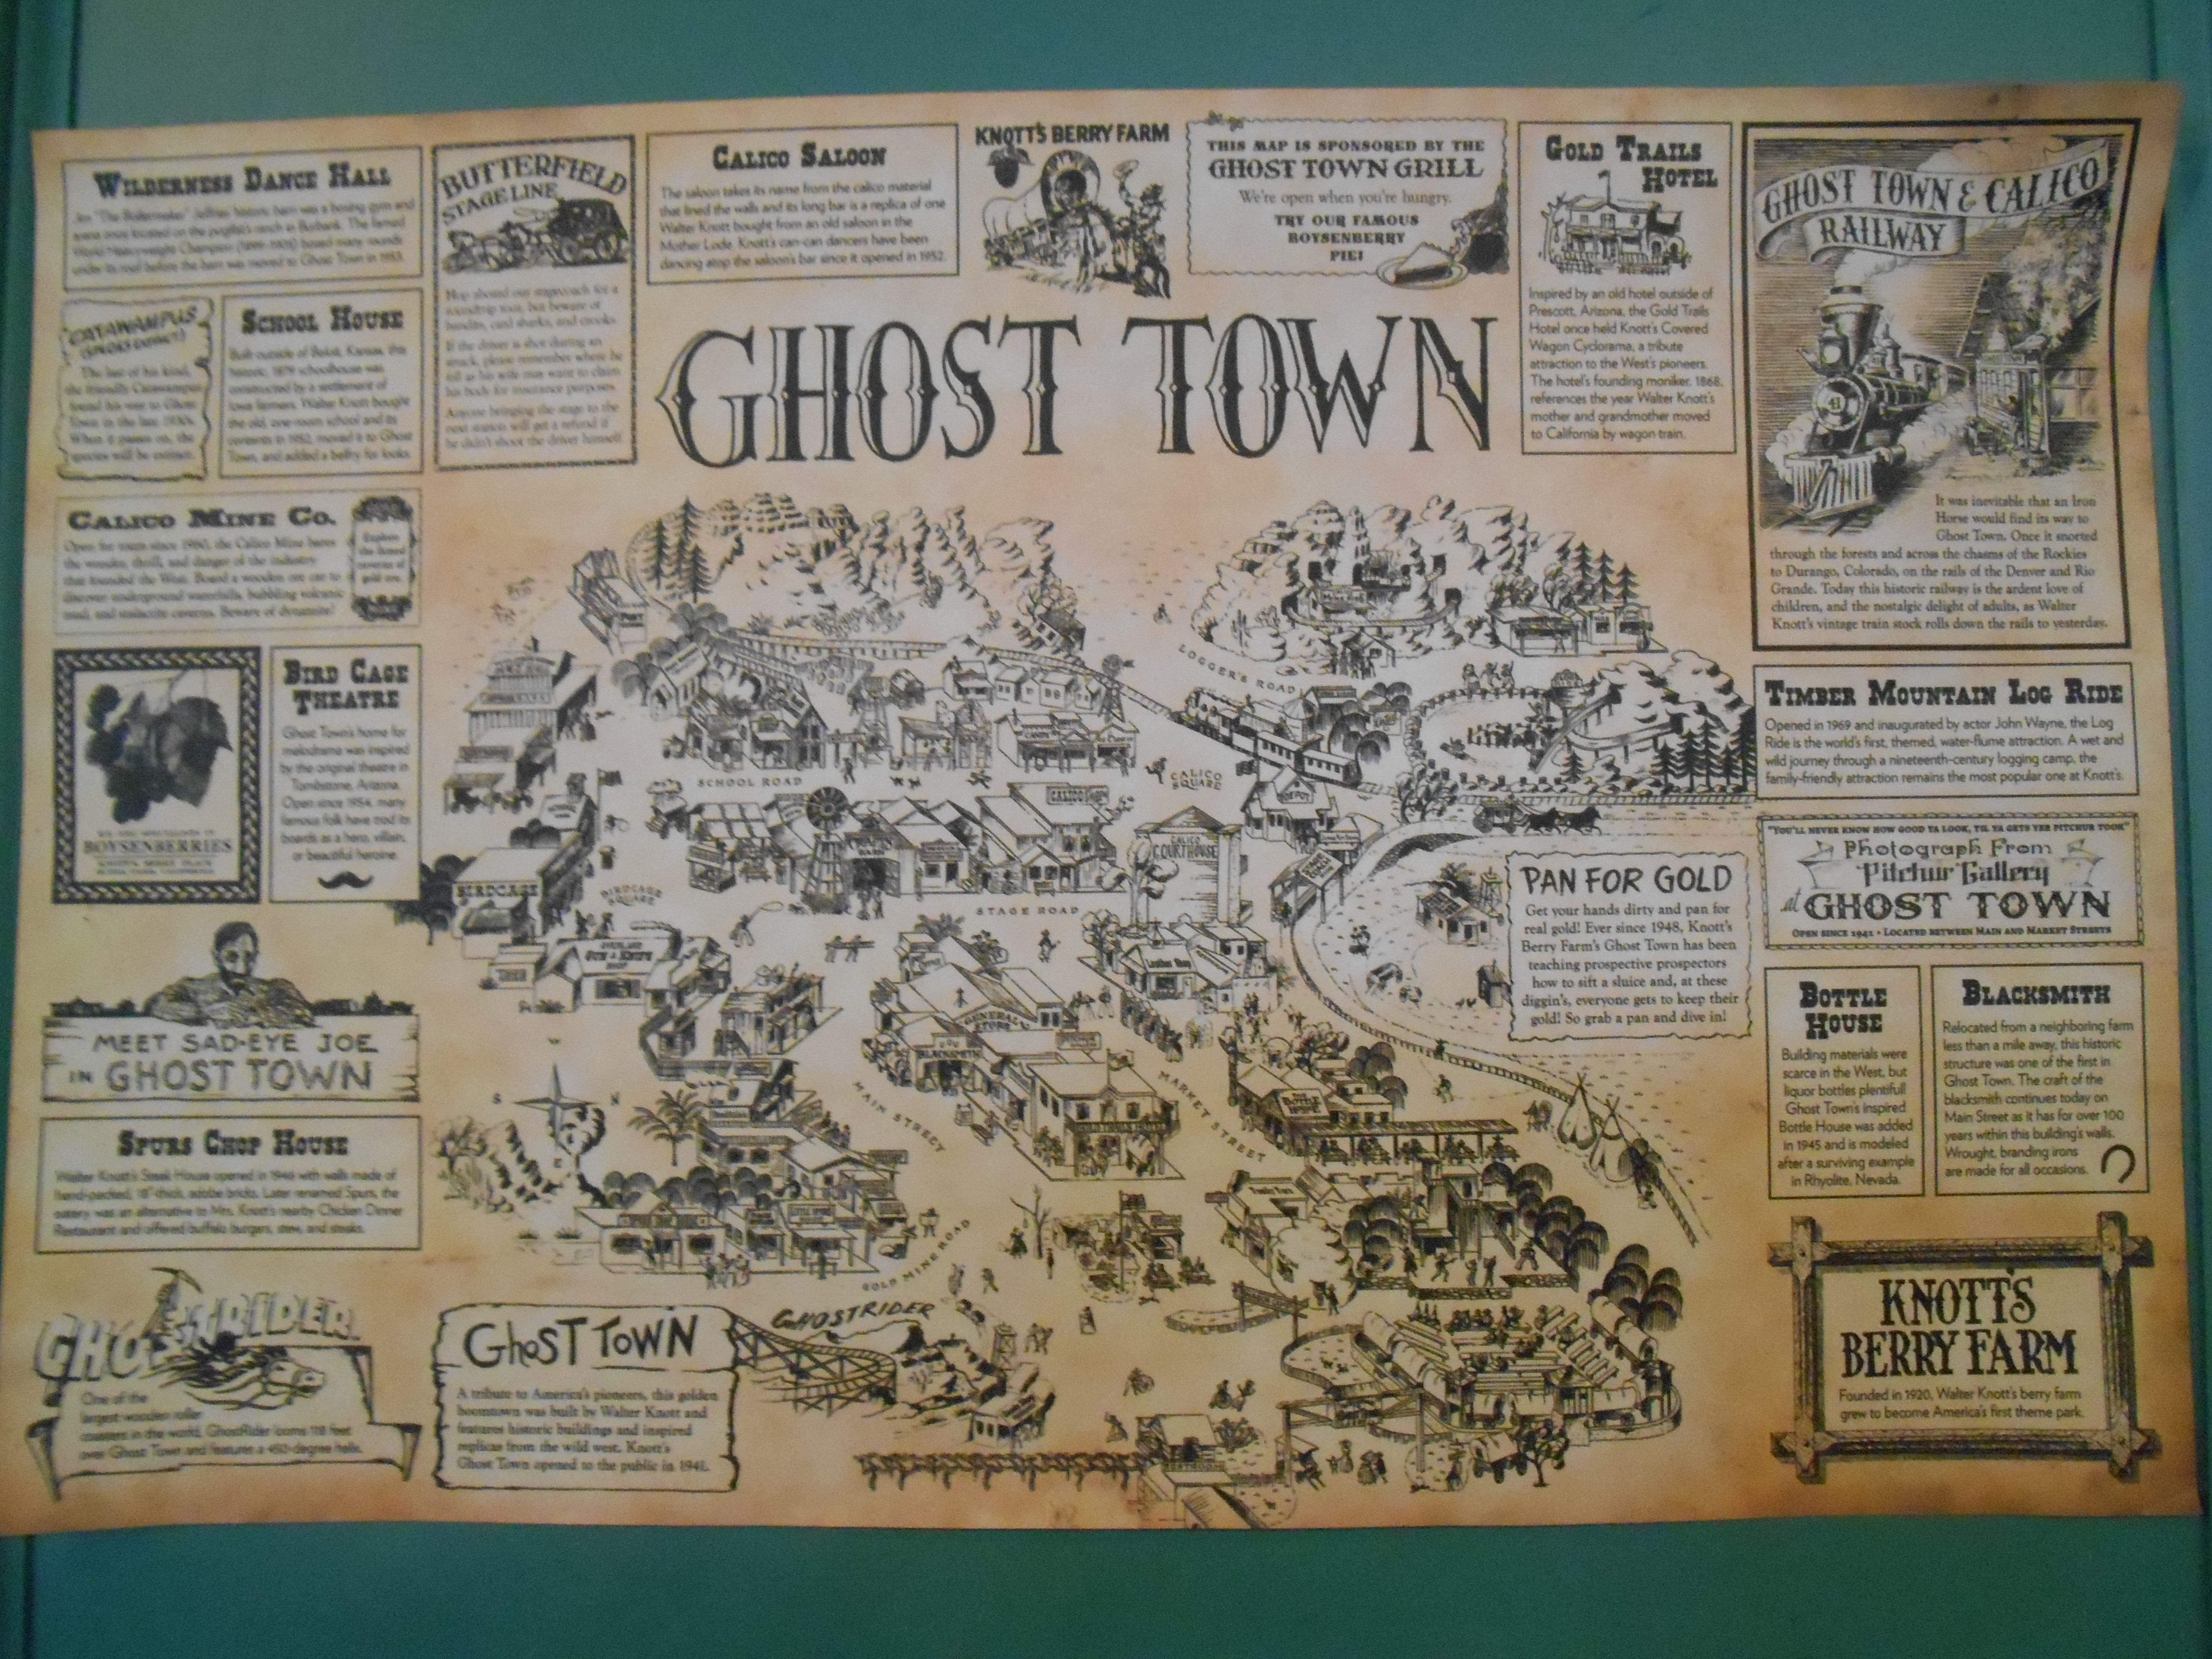 Map of Ghost Town in Knott's Berry Farm. | Photos from the ... Knotts Berry Farm Map on usc map, knott's map, kings island map, amtrak map, six flags map, buena park map, chino hills state park map, cedar point map, disneyland map, dollywood map, disney map, hersheypark map, universal studios map, dorney park map, great america map, santa monica map, los angeles map, san diego map, university of southern california map, sesame place map,